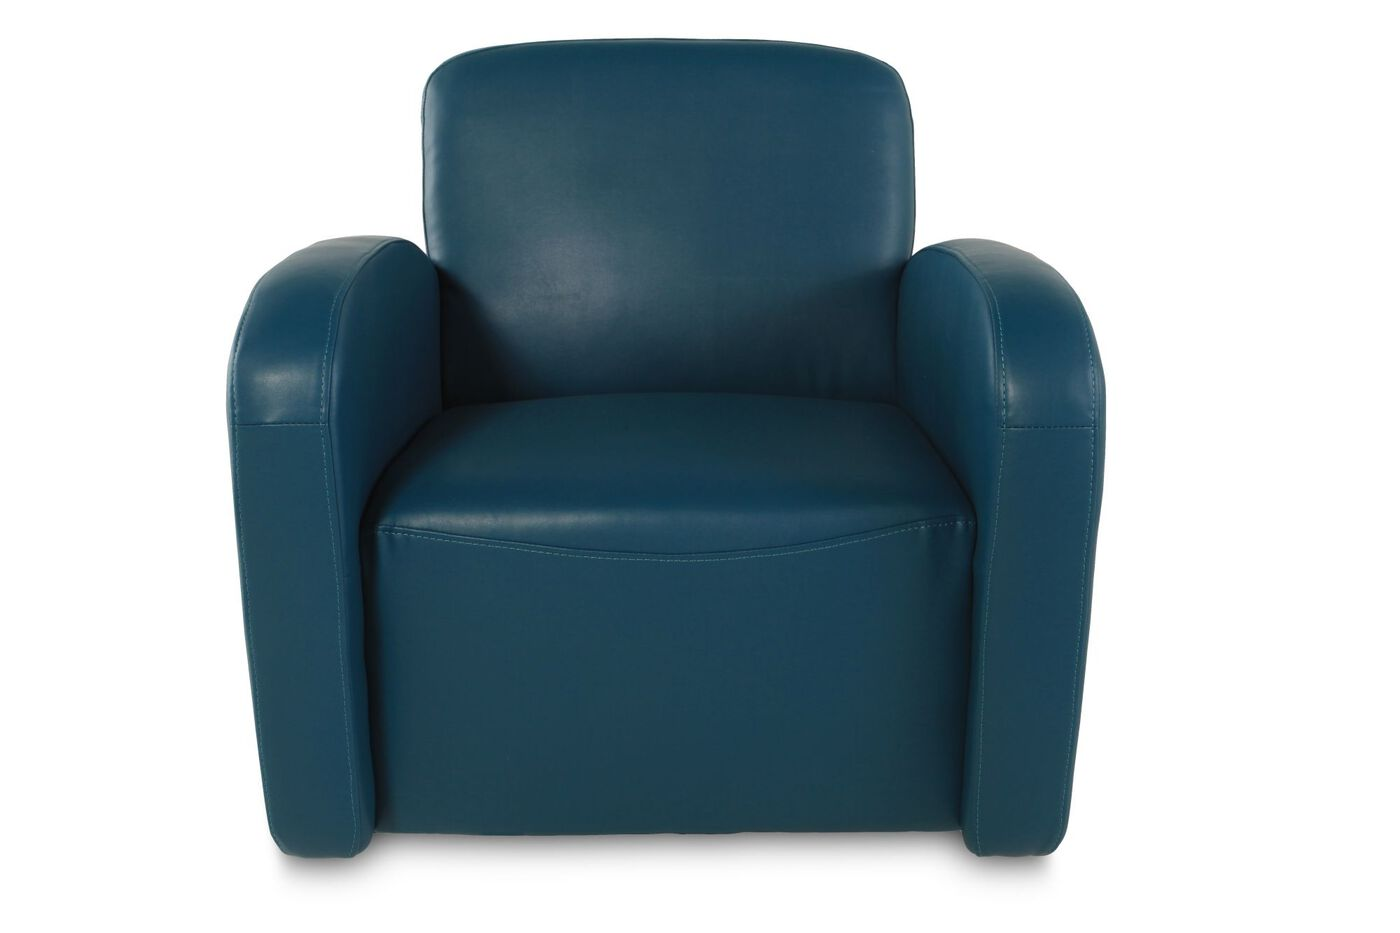 Boulevard Turquoise Swivel Chair | Mathis Brothers Furniture